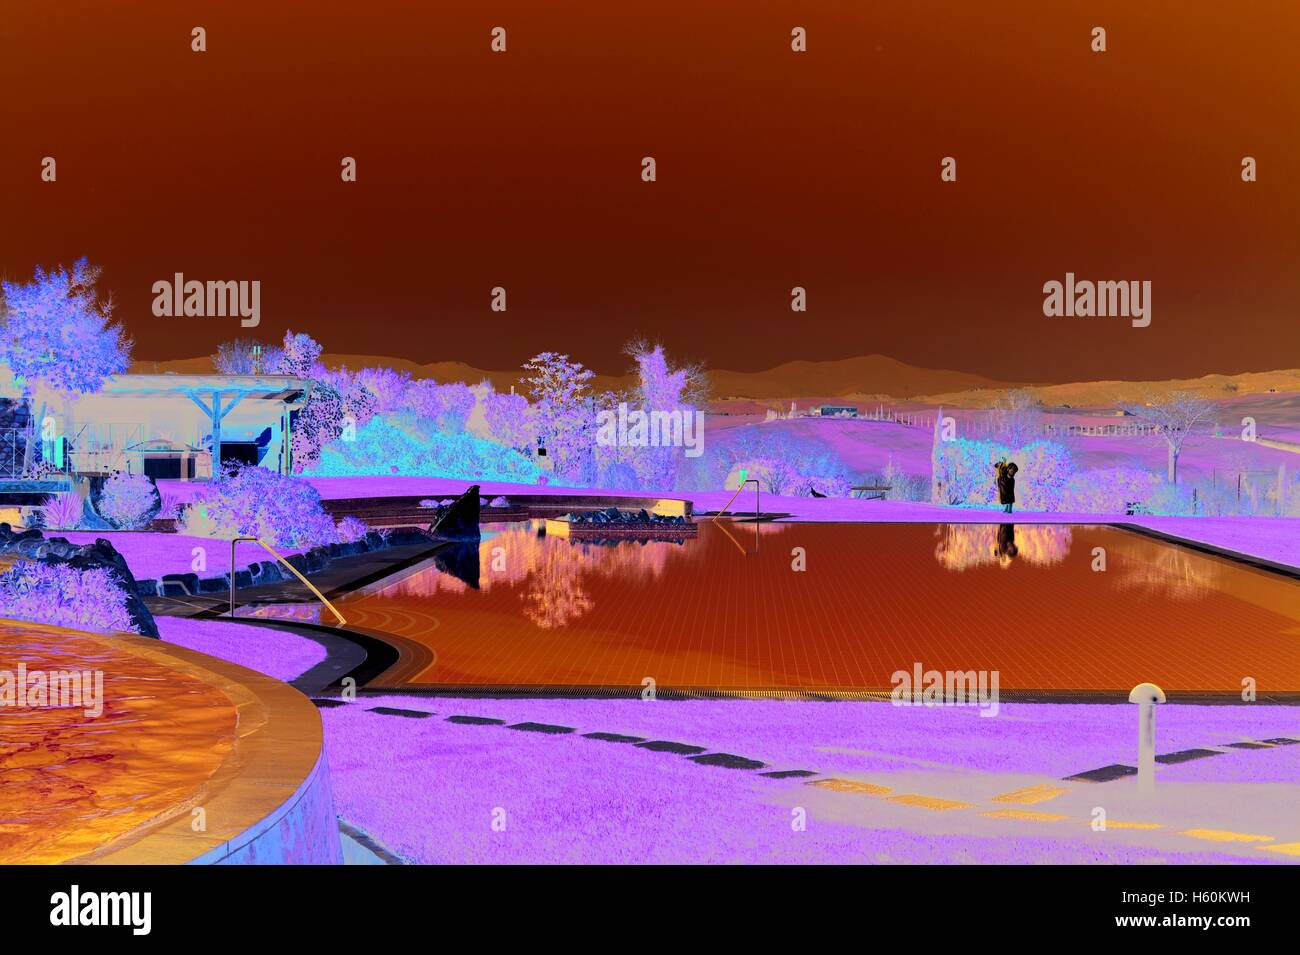 stock photo the thermal pools of the adler hotel in bagno vignoni surrounded by the breathtaking val dorcia countryside tuscany italy